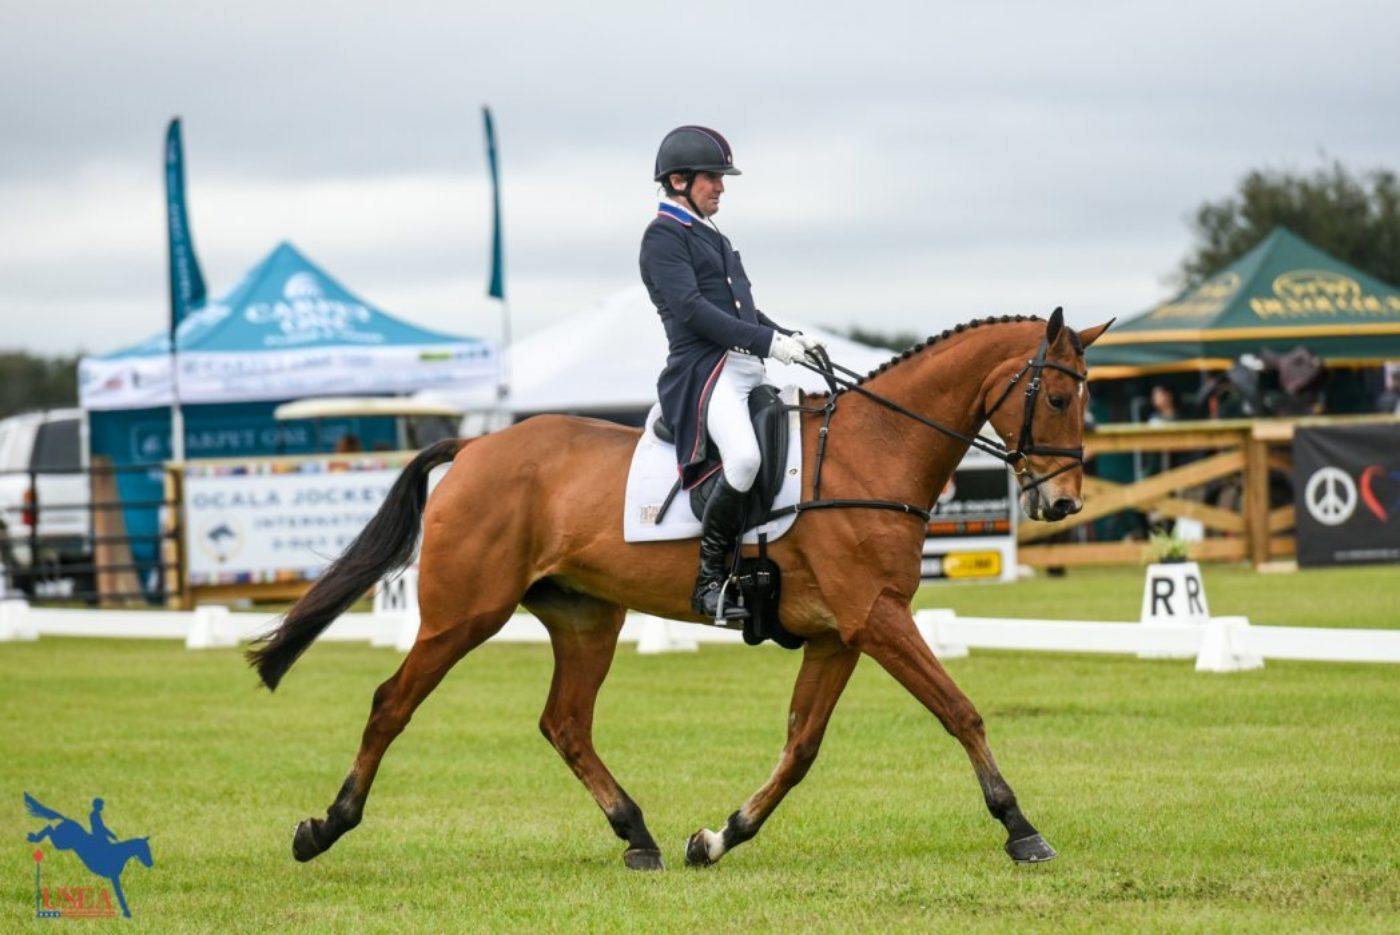 2nd - Phillip Dutton and Fernhill Fugitive - 29.9